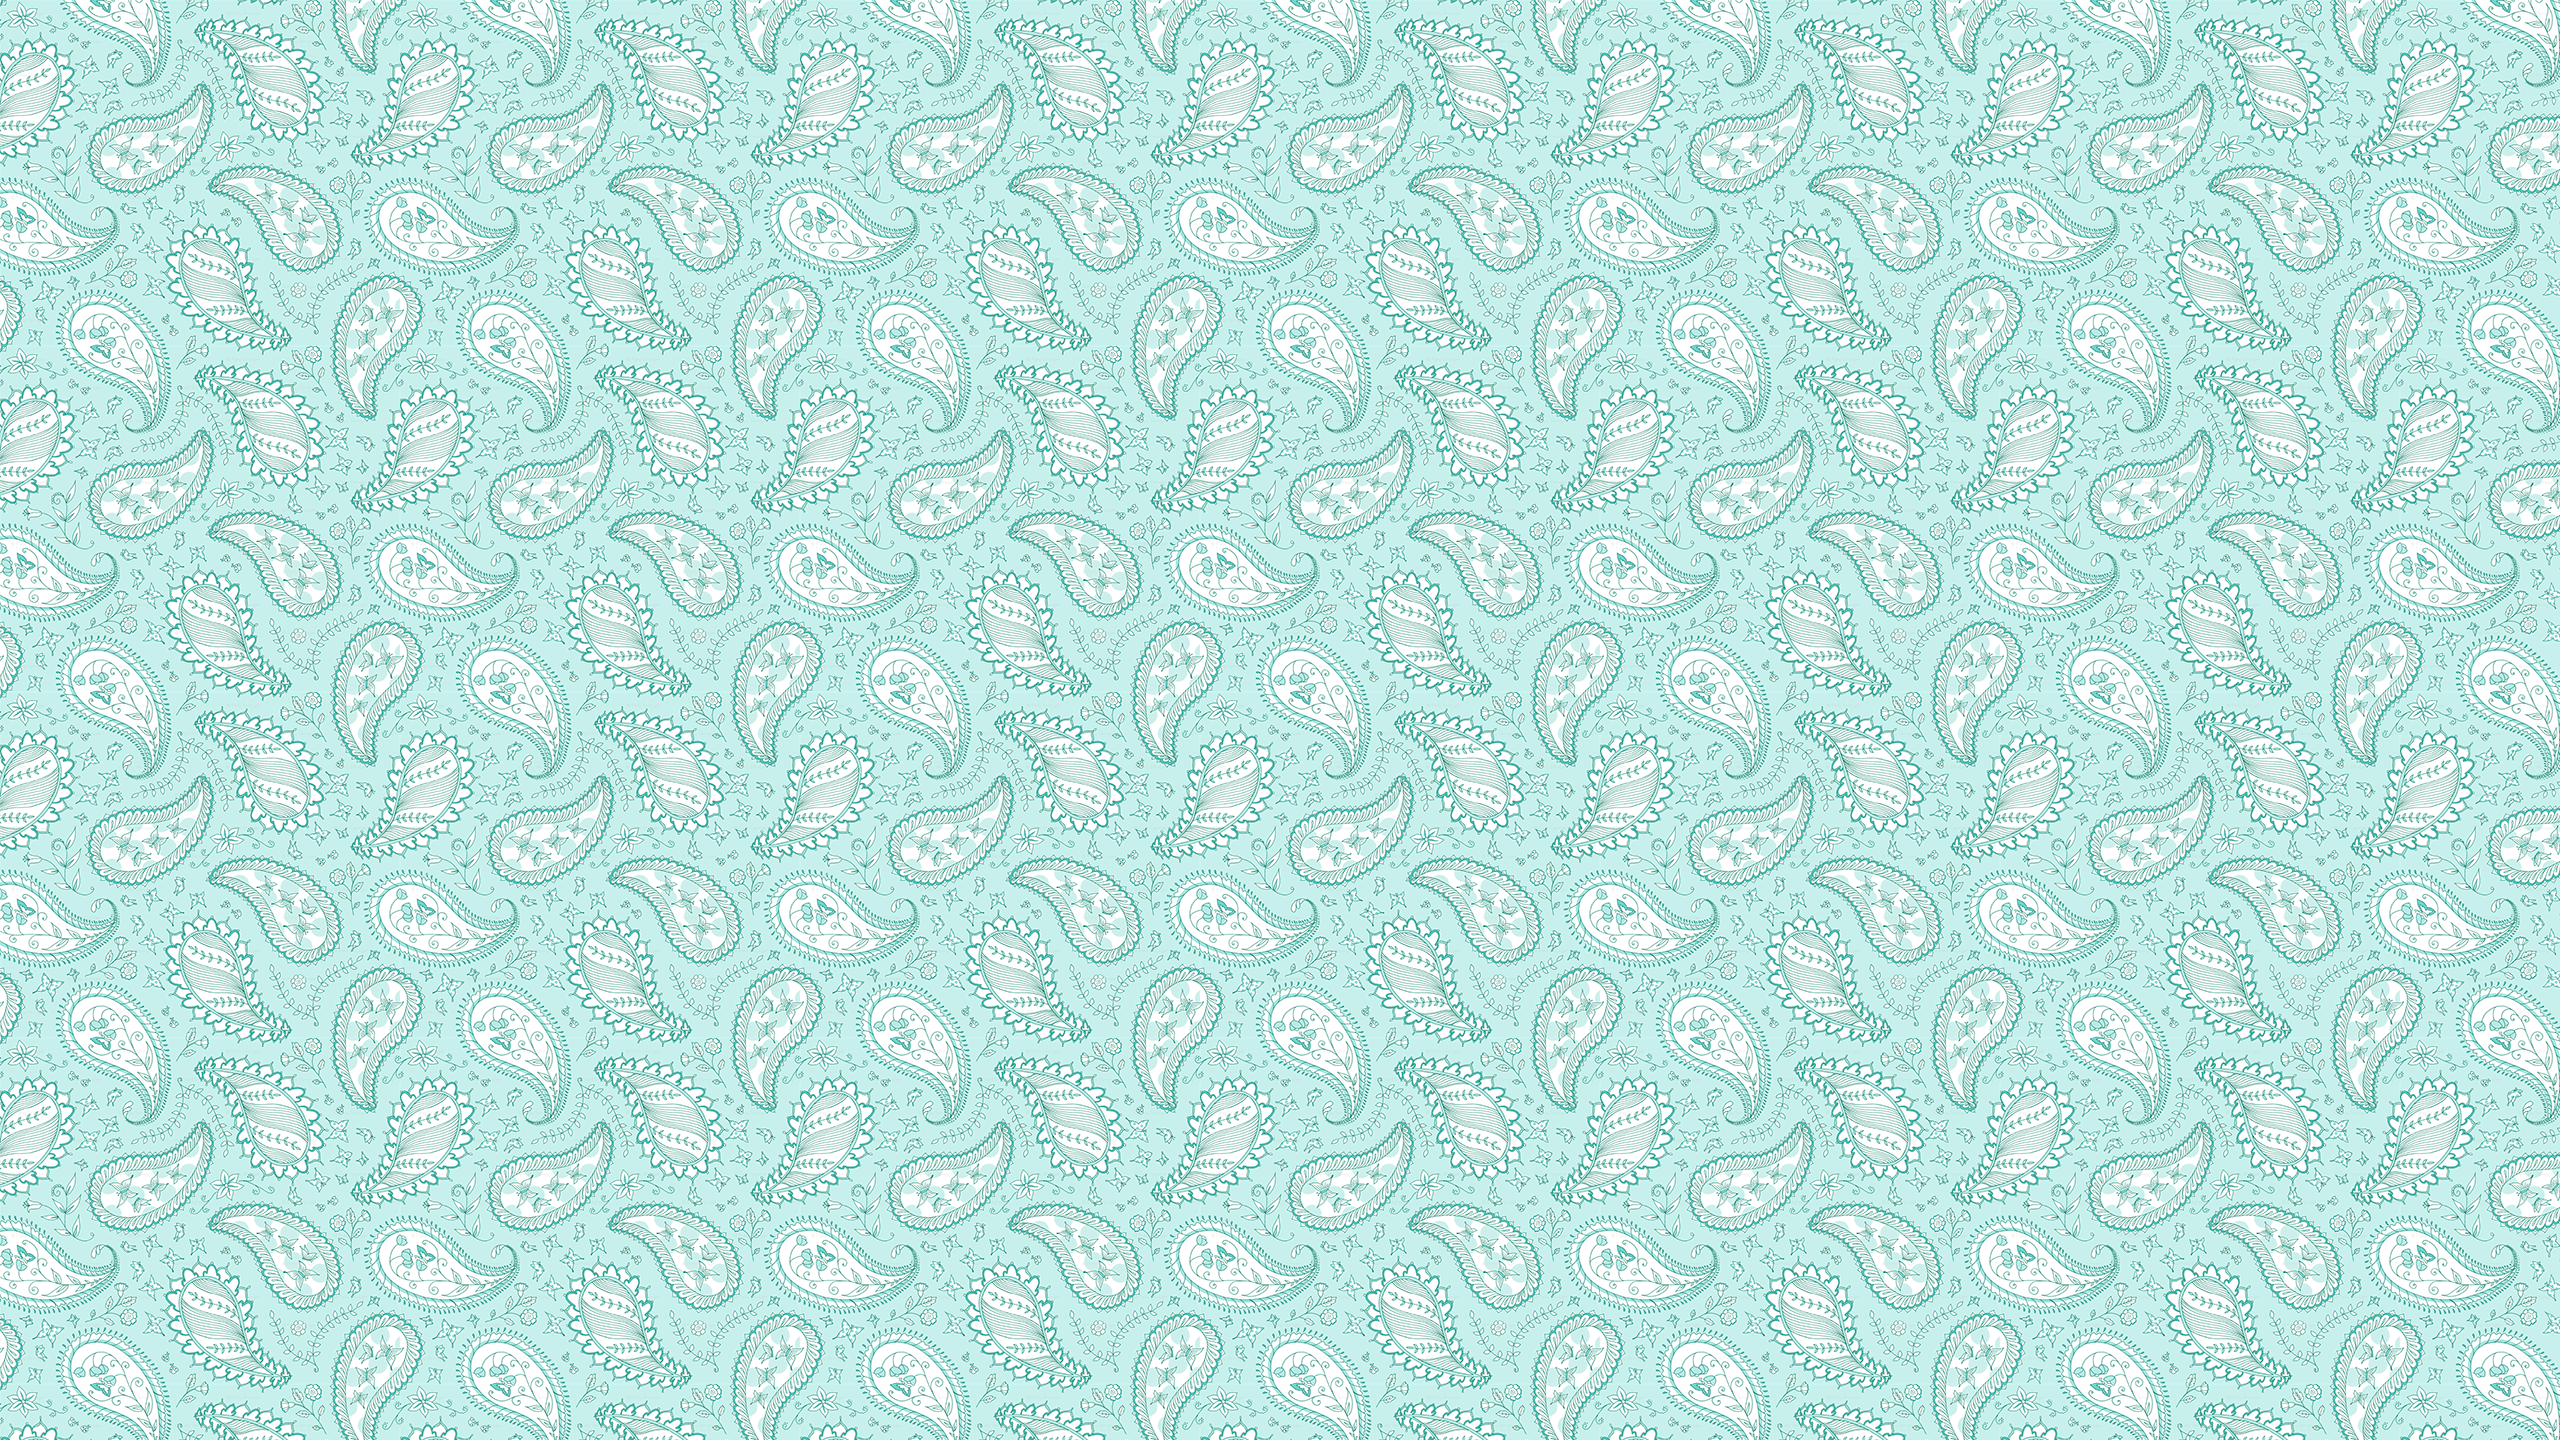 This Teal Paisley Desktop Wallpaper Is Easy Just Save The 2560x1440